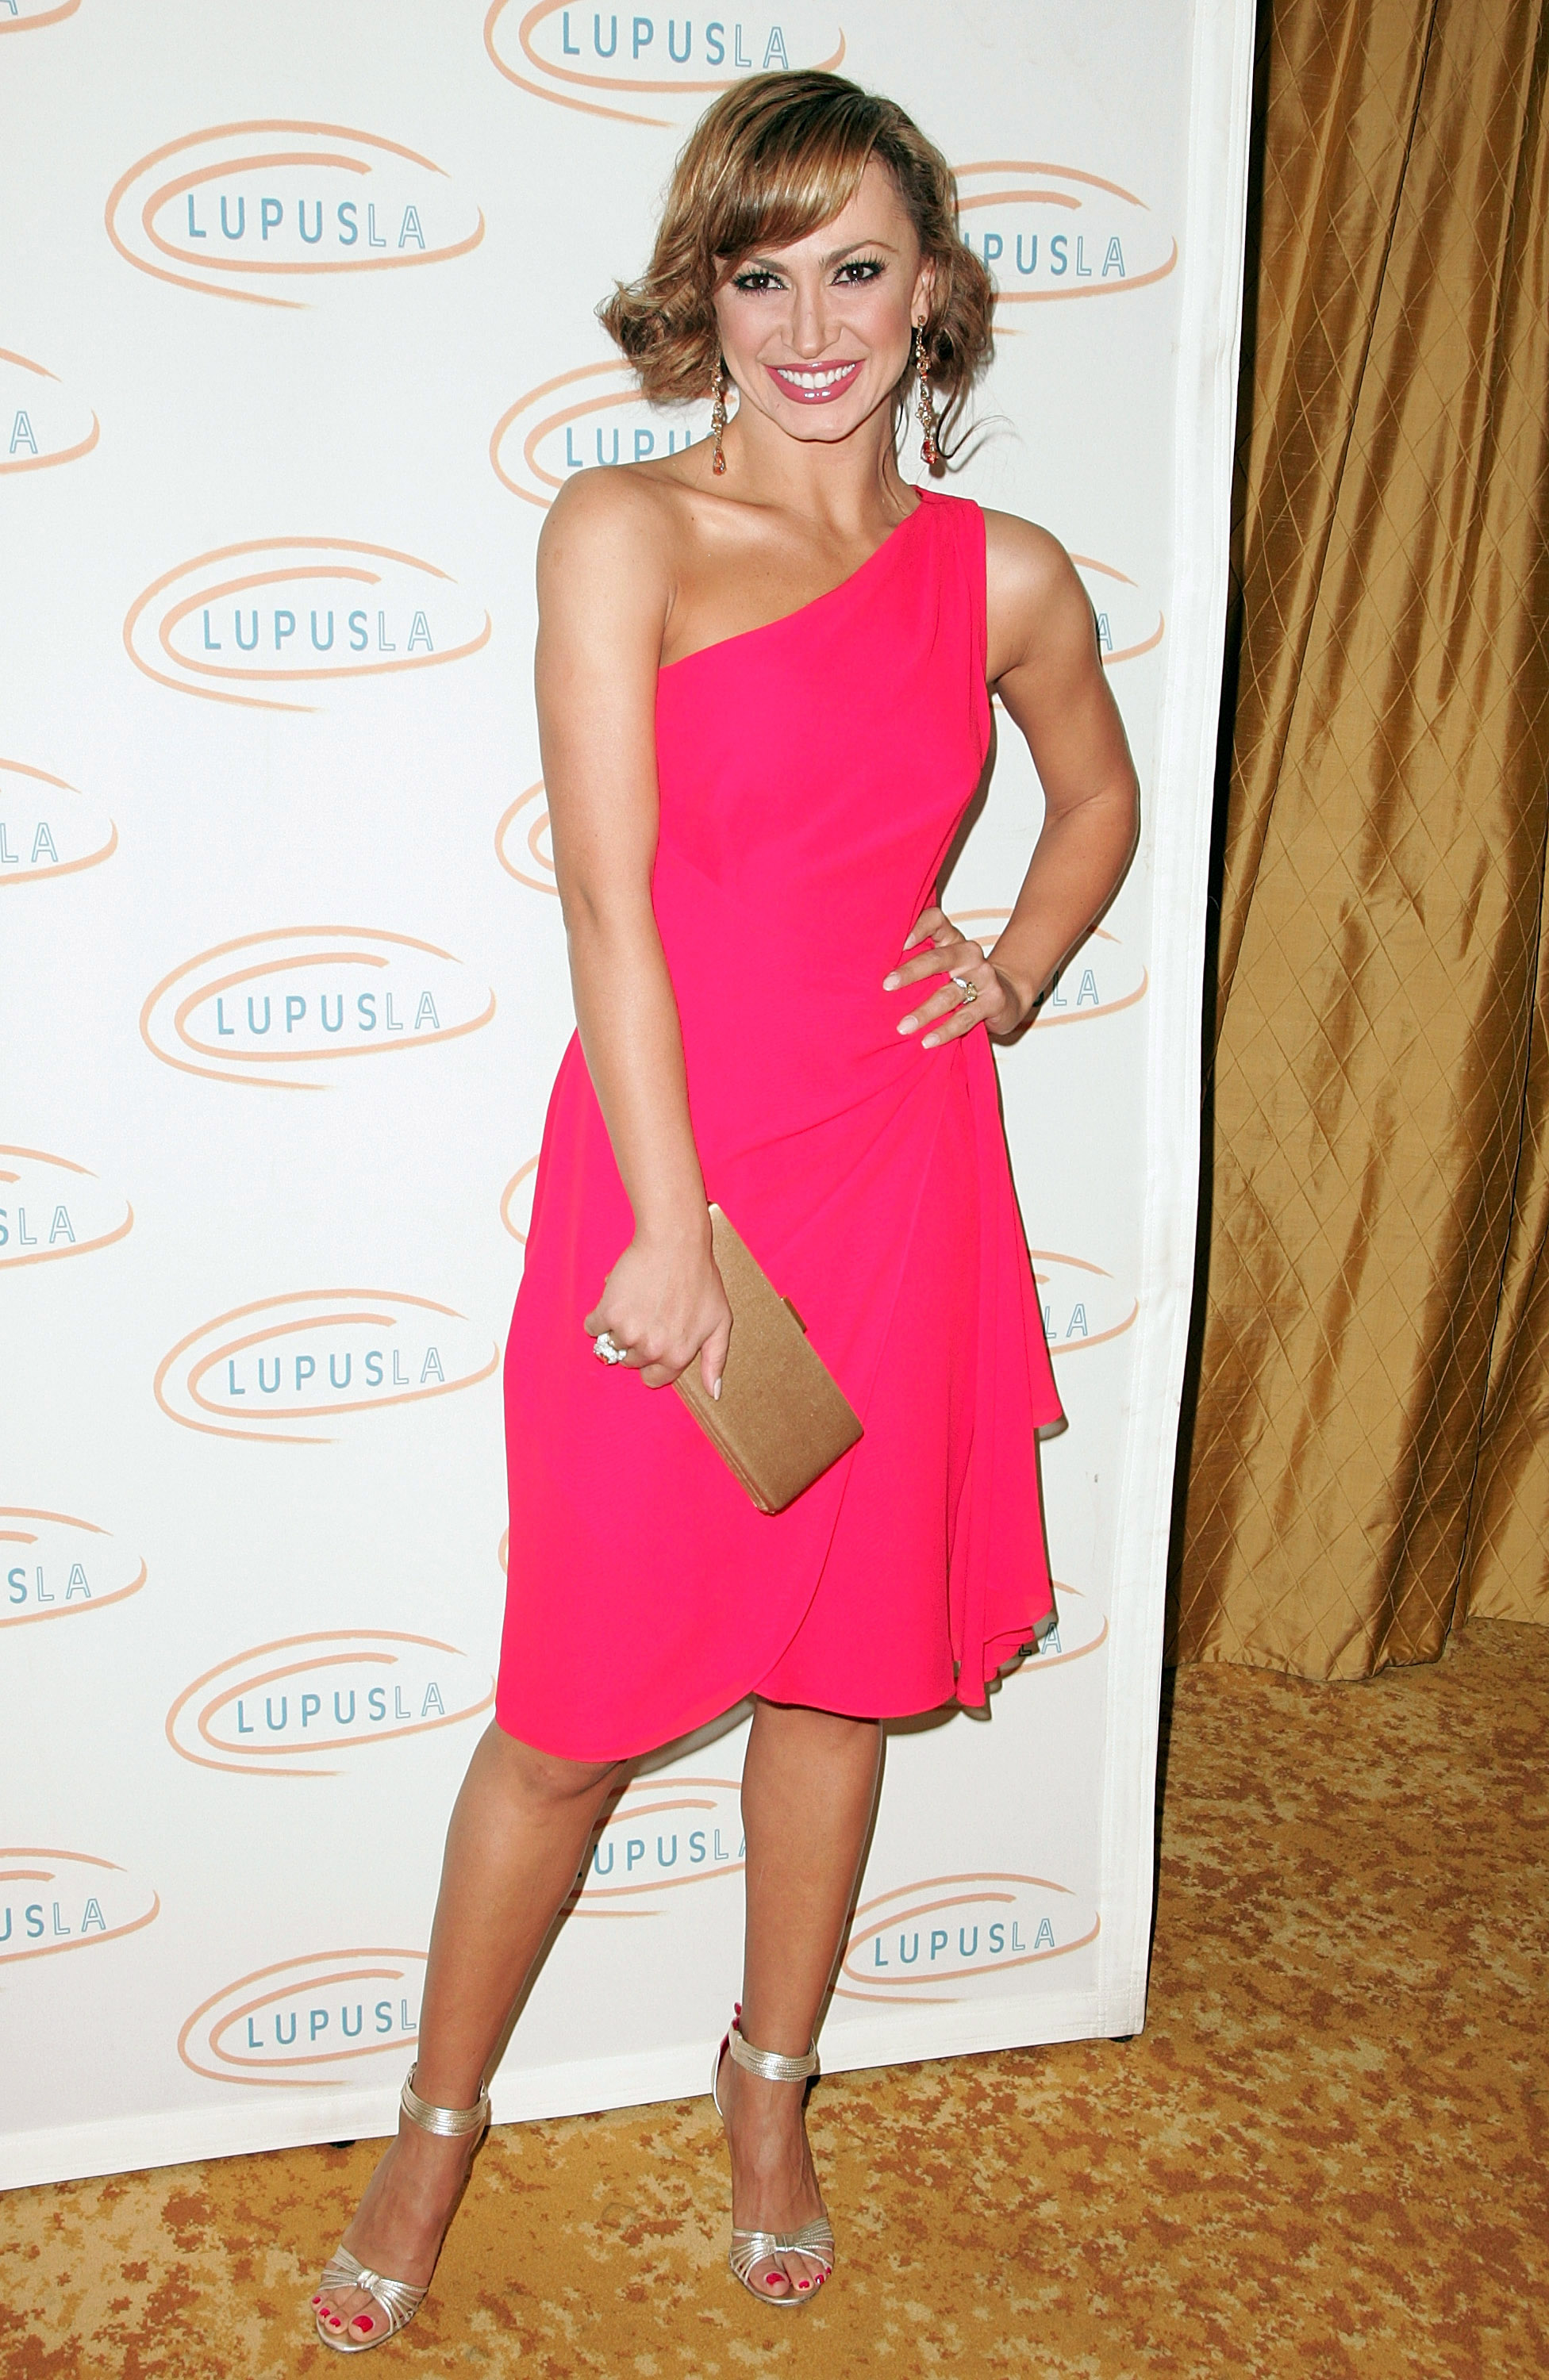 31156_Karina_Smirnoff_2008-11-07_-_Lupus_LA6s_Sixth_Annual_Hollywood_Bag_Ladies_Luncheon_in_Beverly_H_8300_122_147lo.jpg